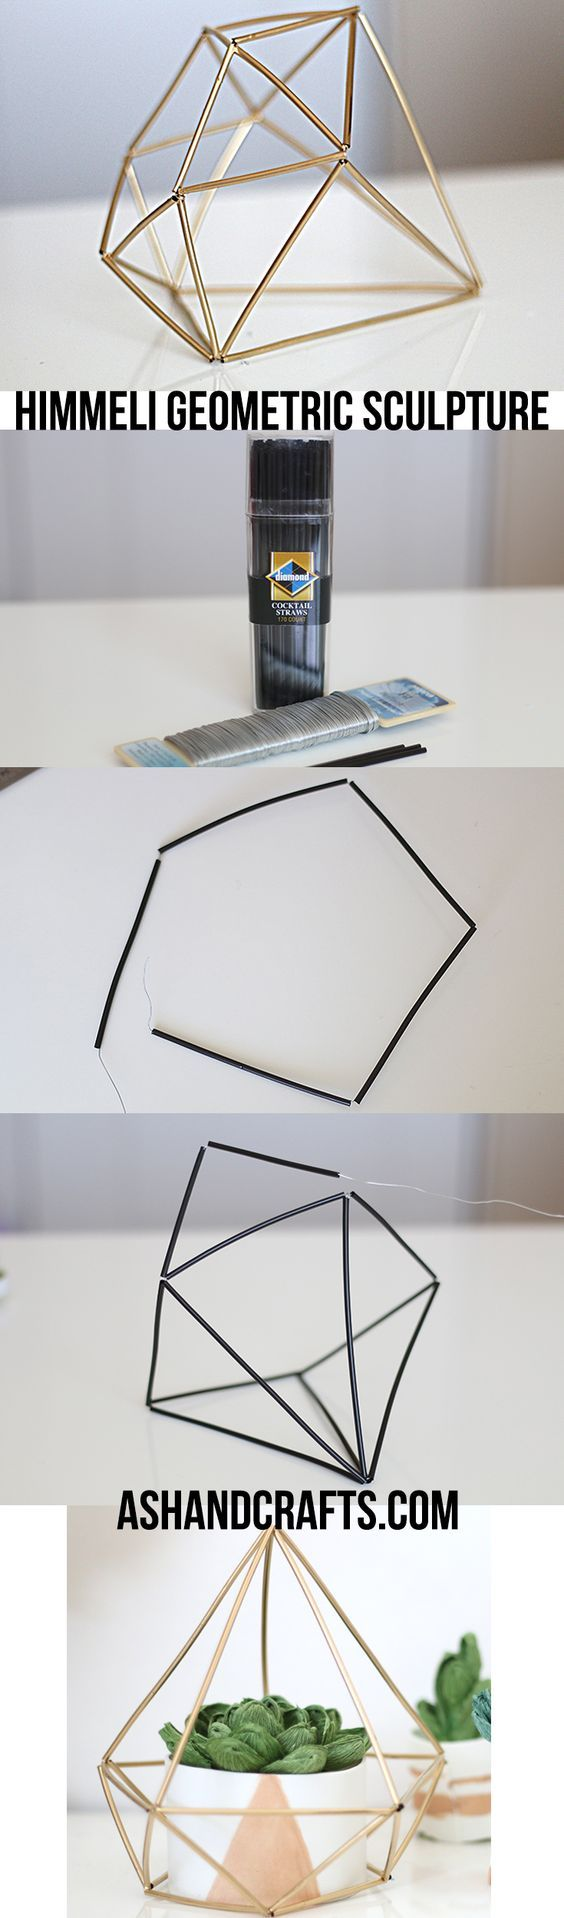 DIY Himmeli Geometric Sculpture | ashandcrafts.com: